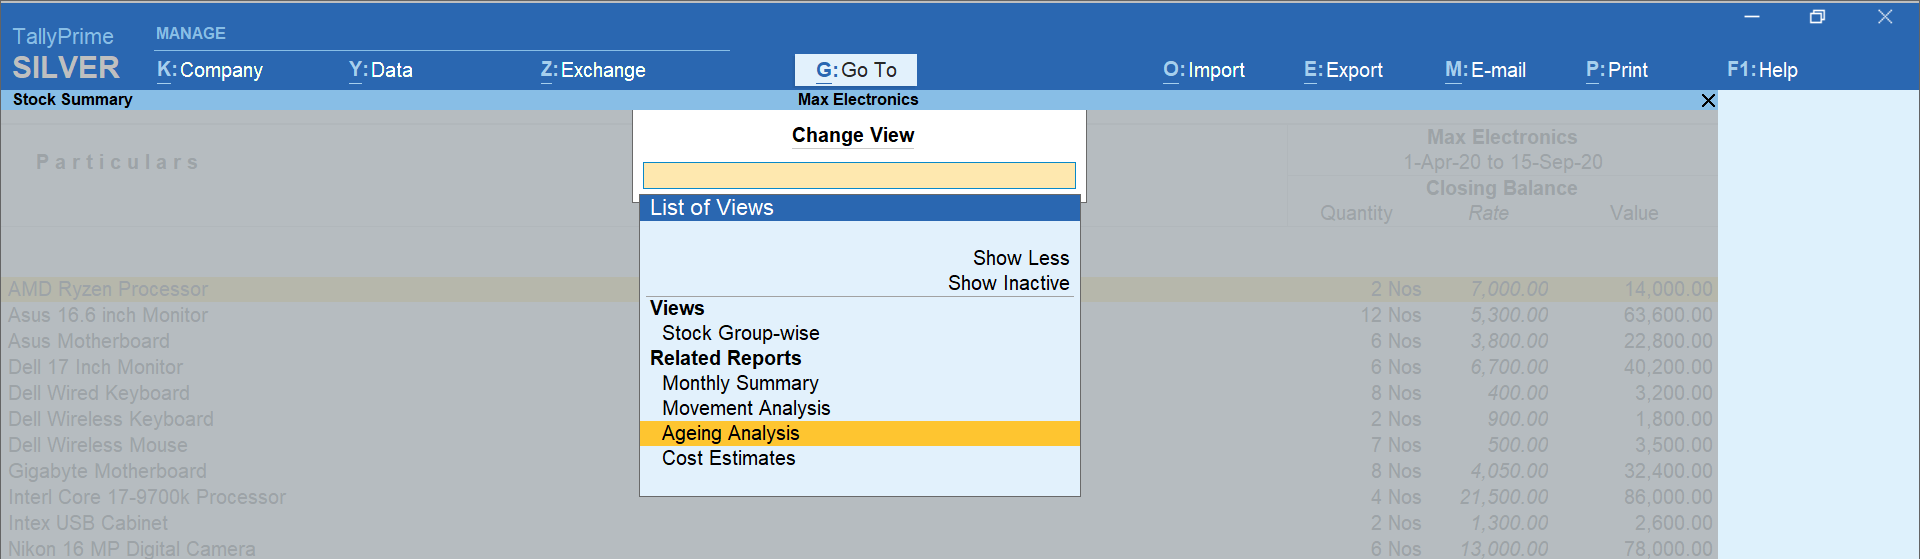 change view report in tallyprime